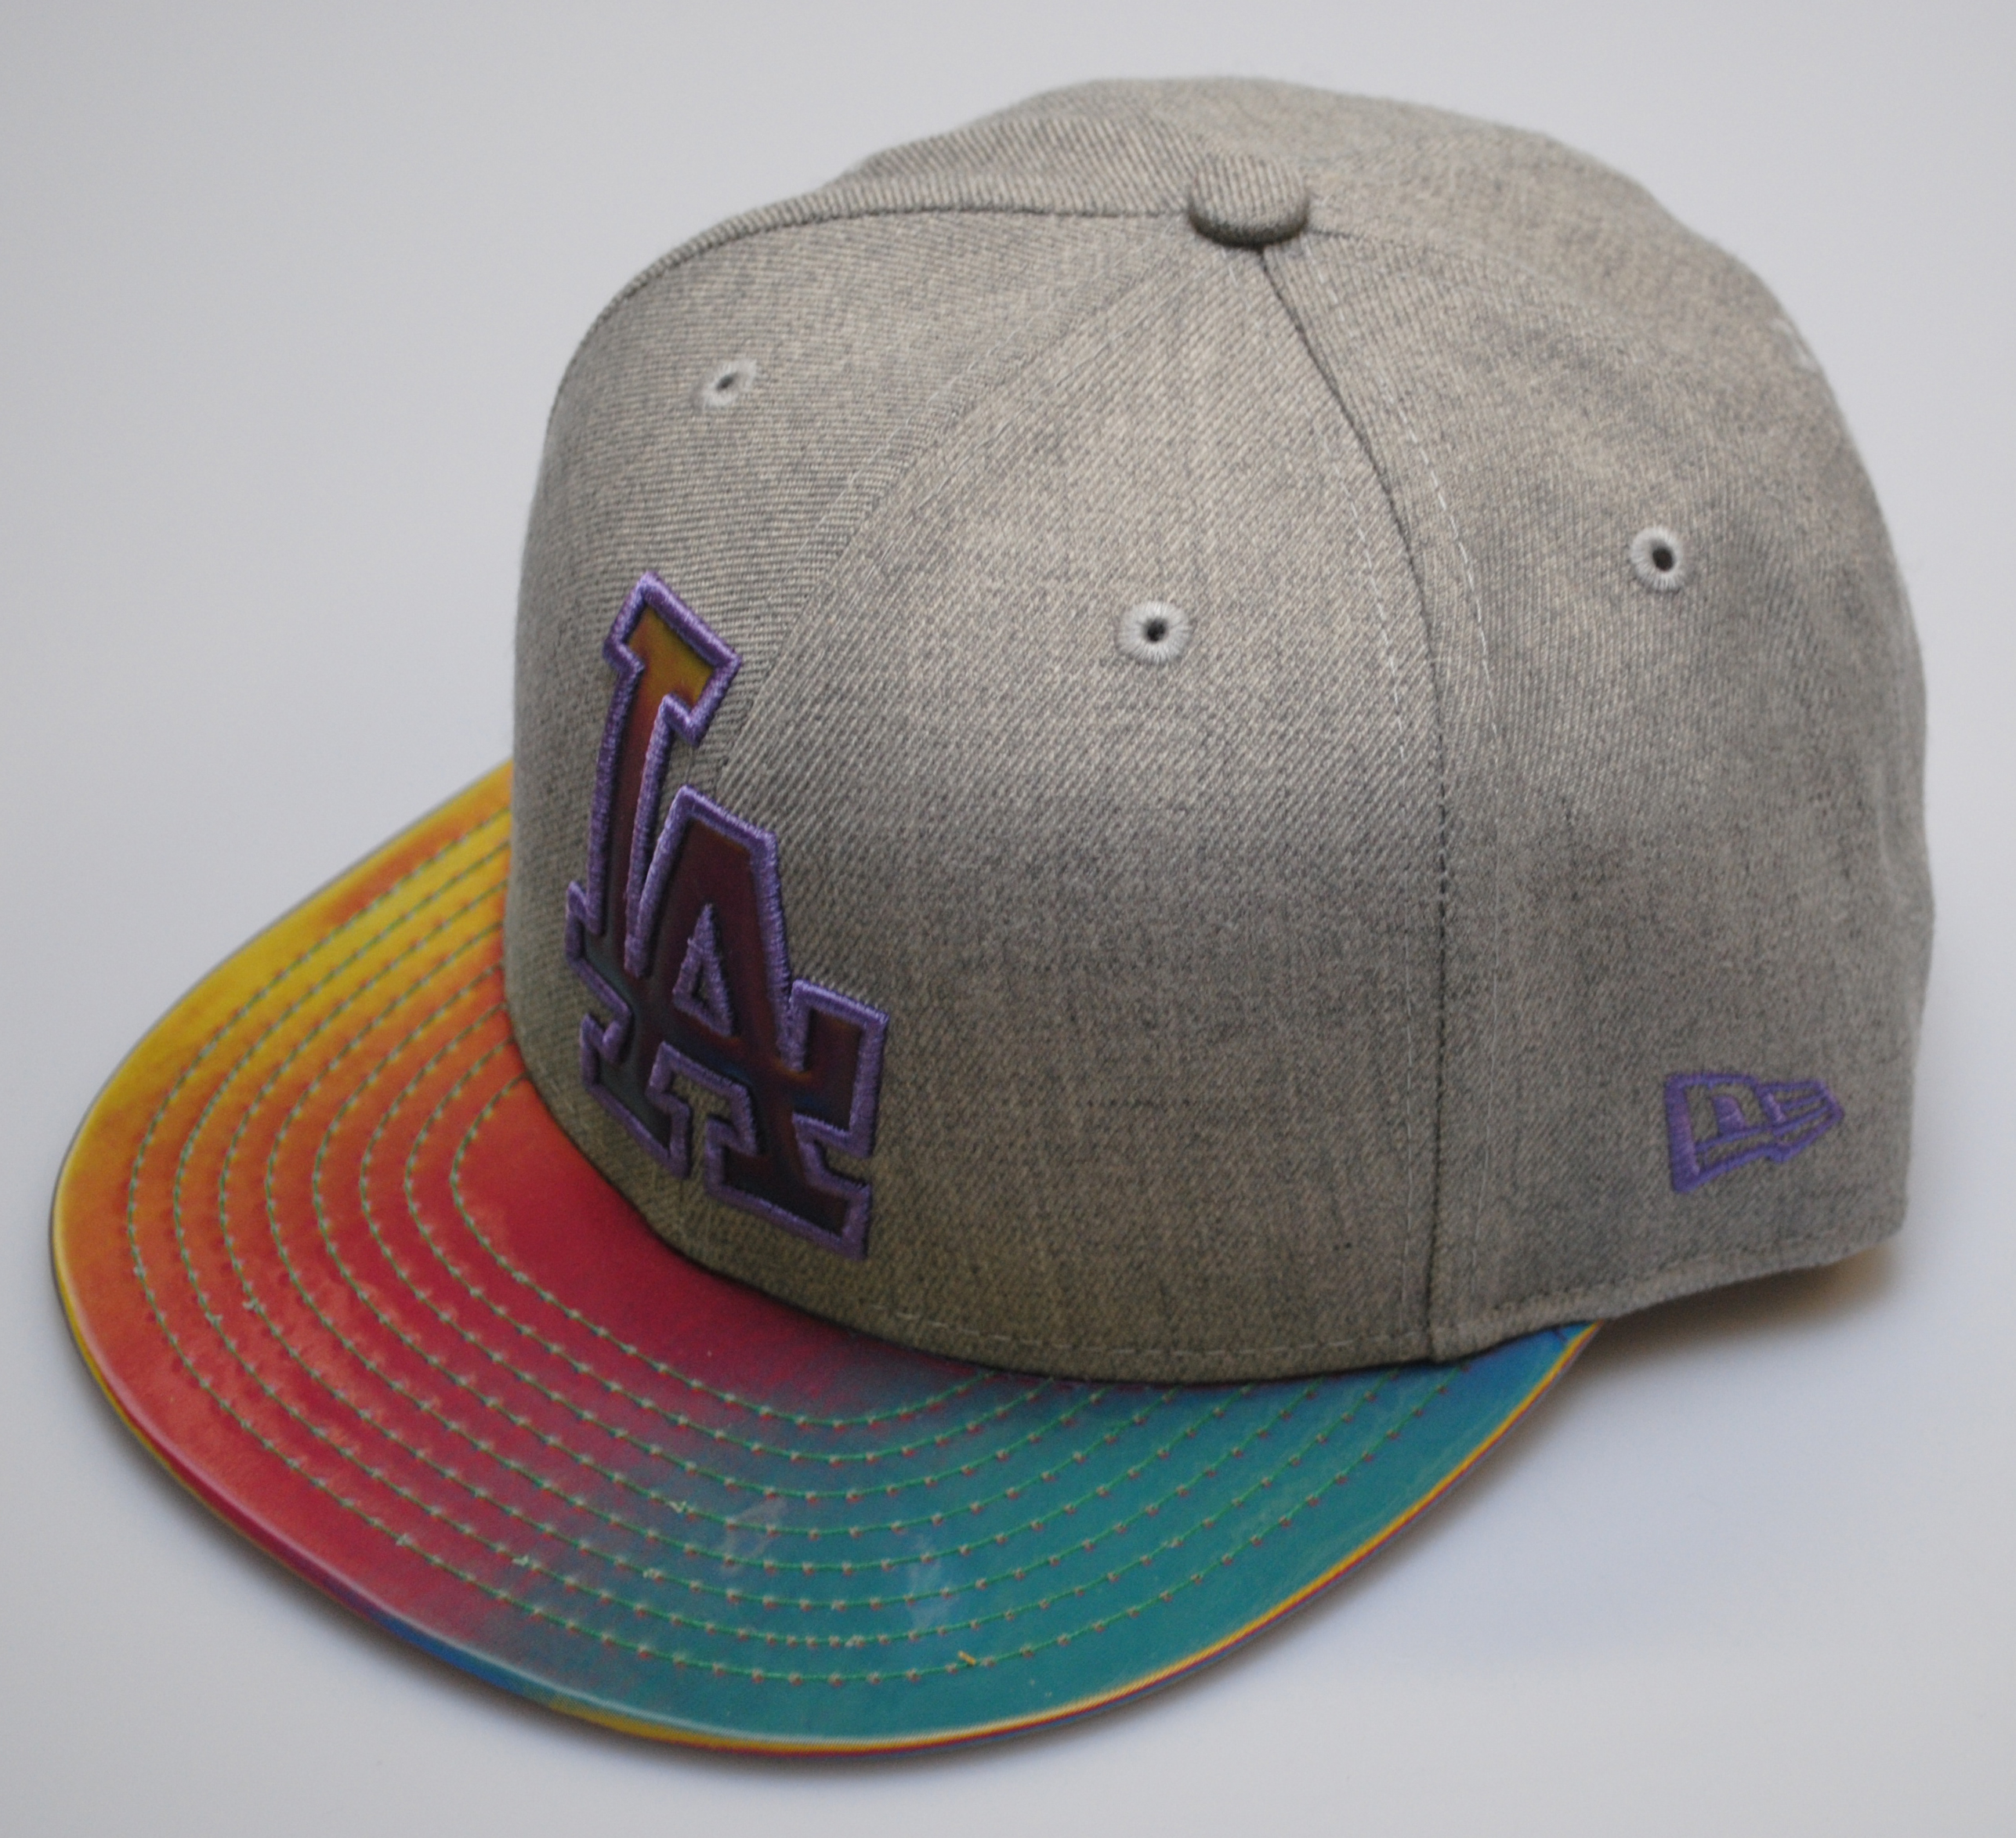 New Era 9fifty LA Dodgers Grey Baseball Rainbow Colour Changing Snapback Cap S/M